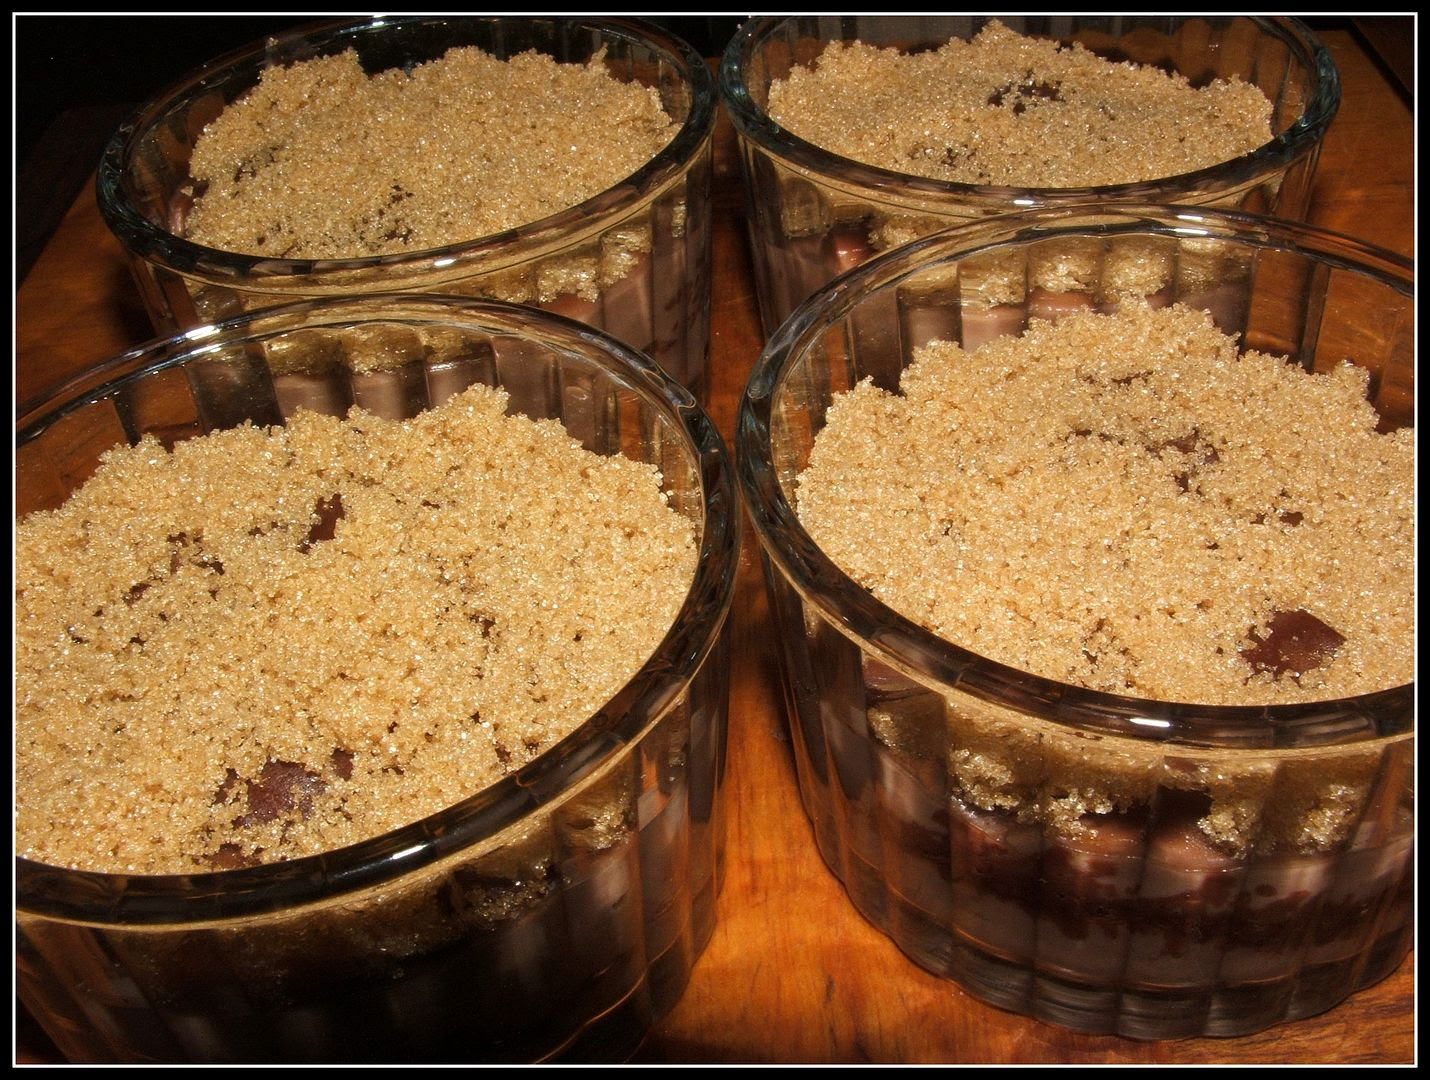 Chili Pepper Chocolate Creme Brulee by Angie Ouellette-Tower photo 004_zpse08b4781.jpg